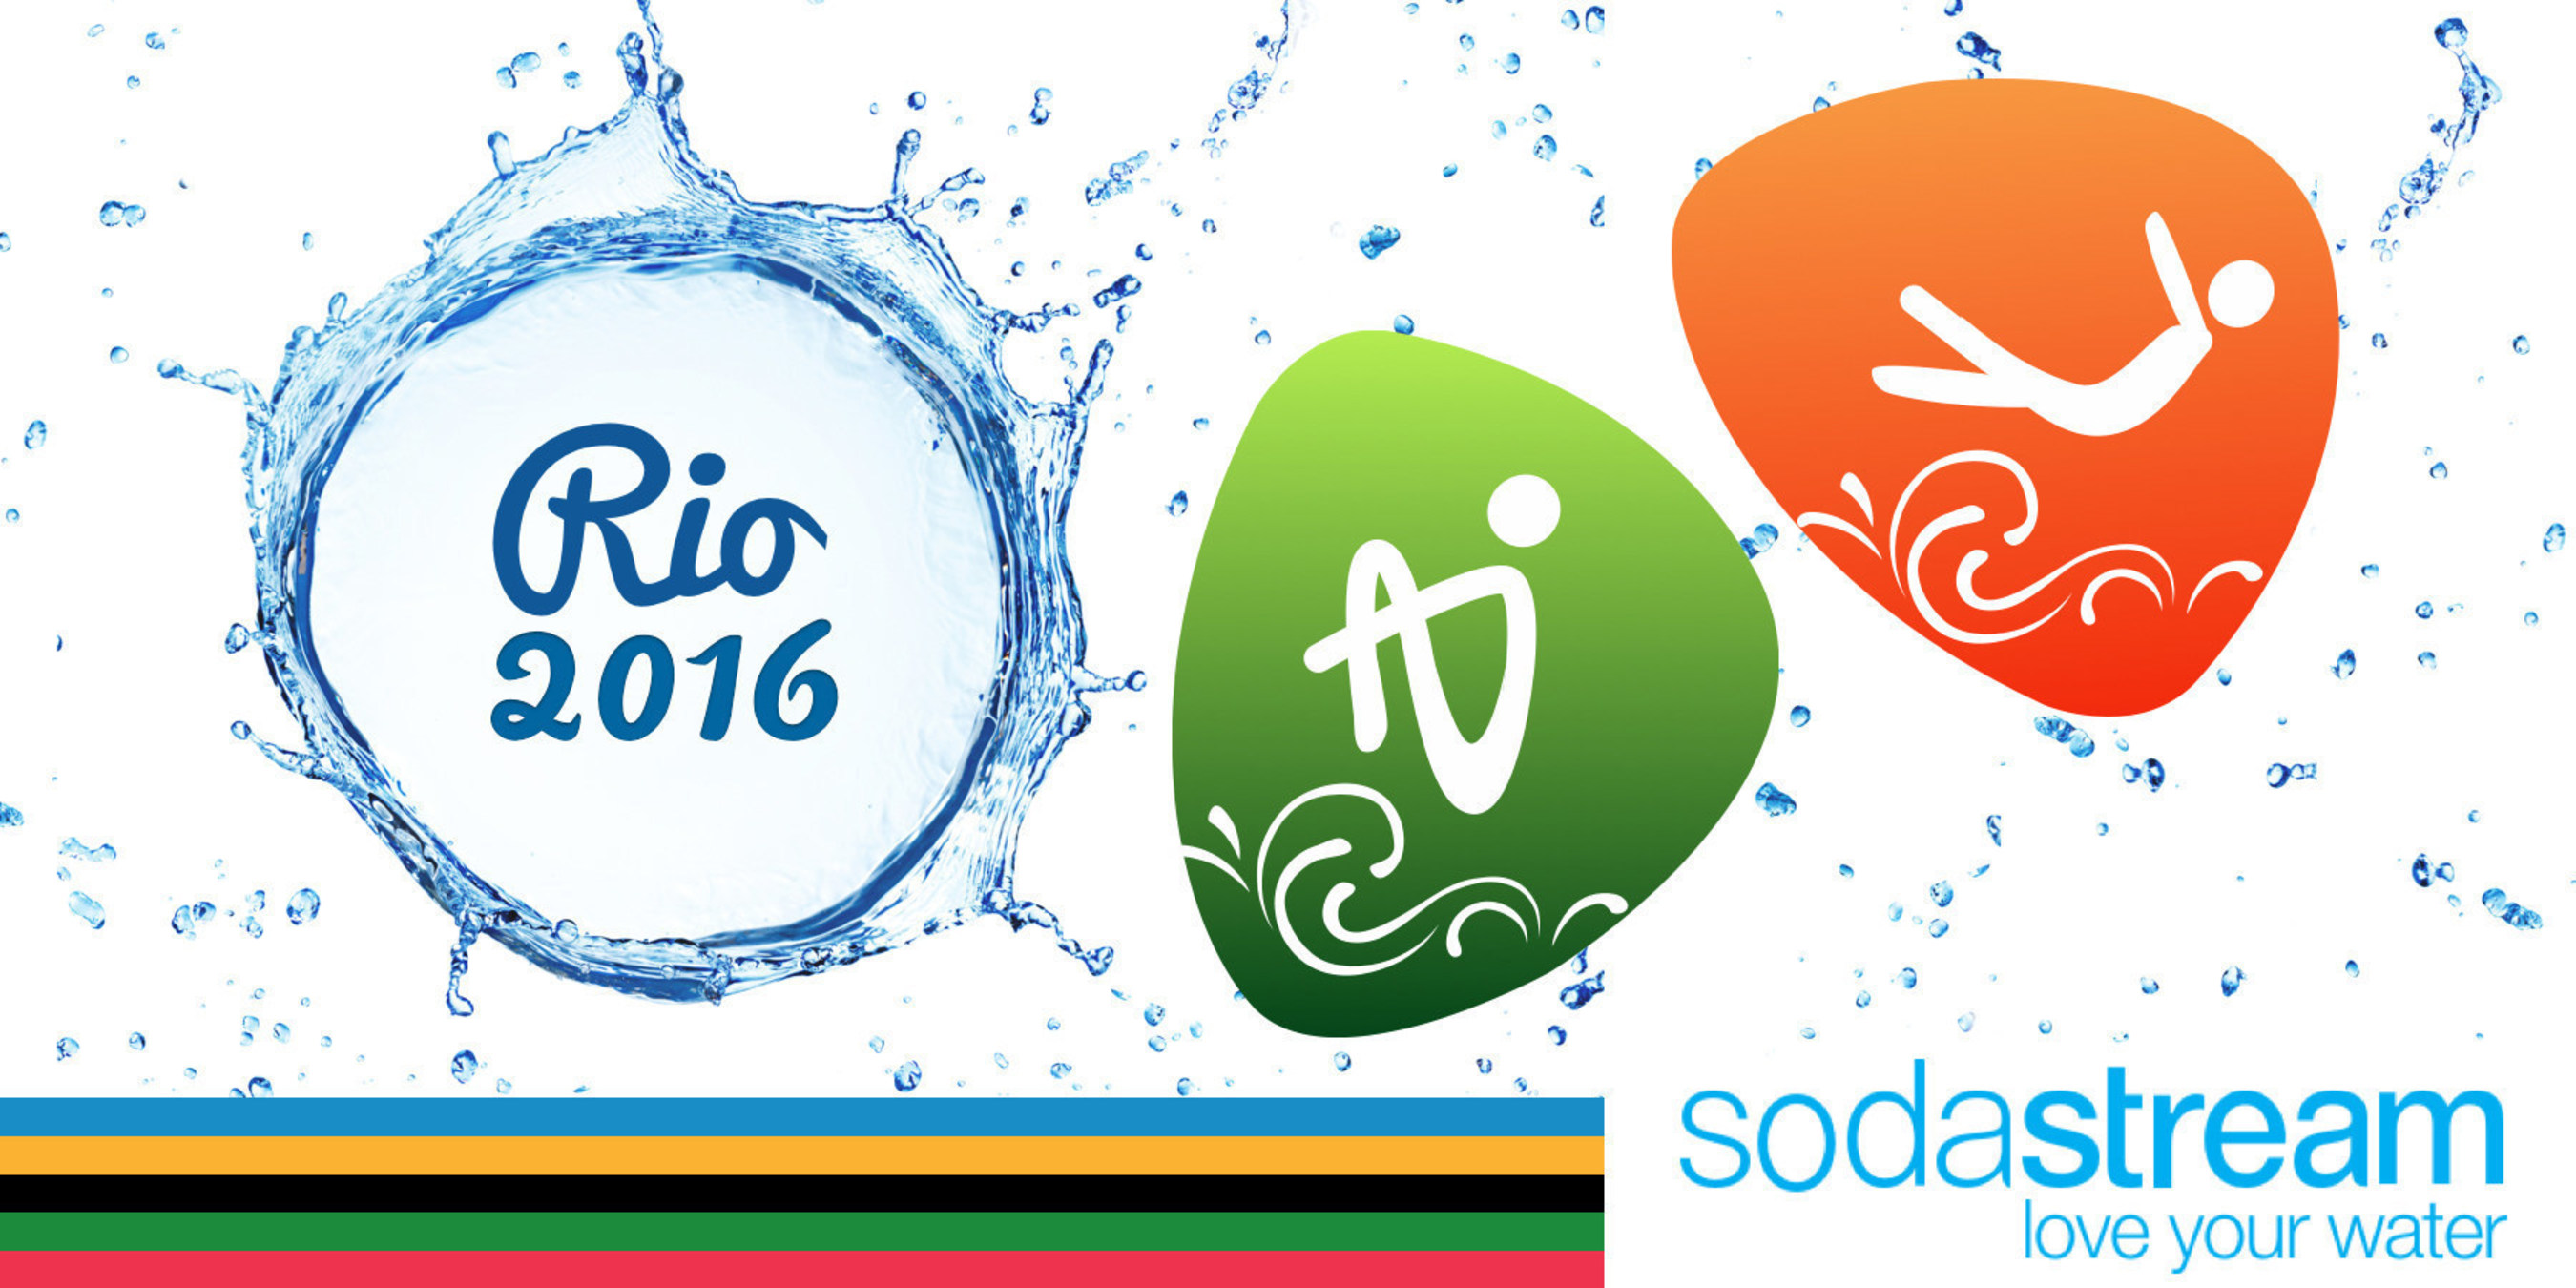 """Sign SodaStream USA's """"Bubbles for Rio"""" Petition to Bring Cannonballs and Bellyflops to Rio 2016 Olympic Diving Events --Signers Can Enter to Win Prize of a SodaStream Rio Bubbles Bundle or Grand Prize of $2,016"""